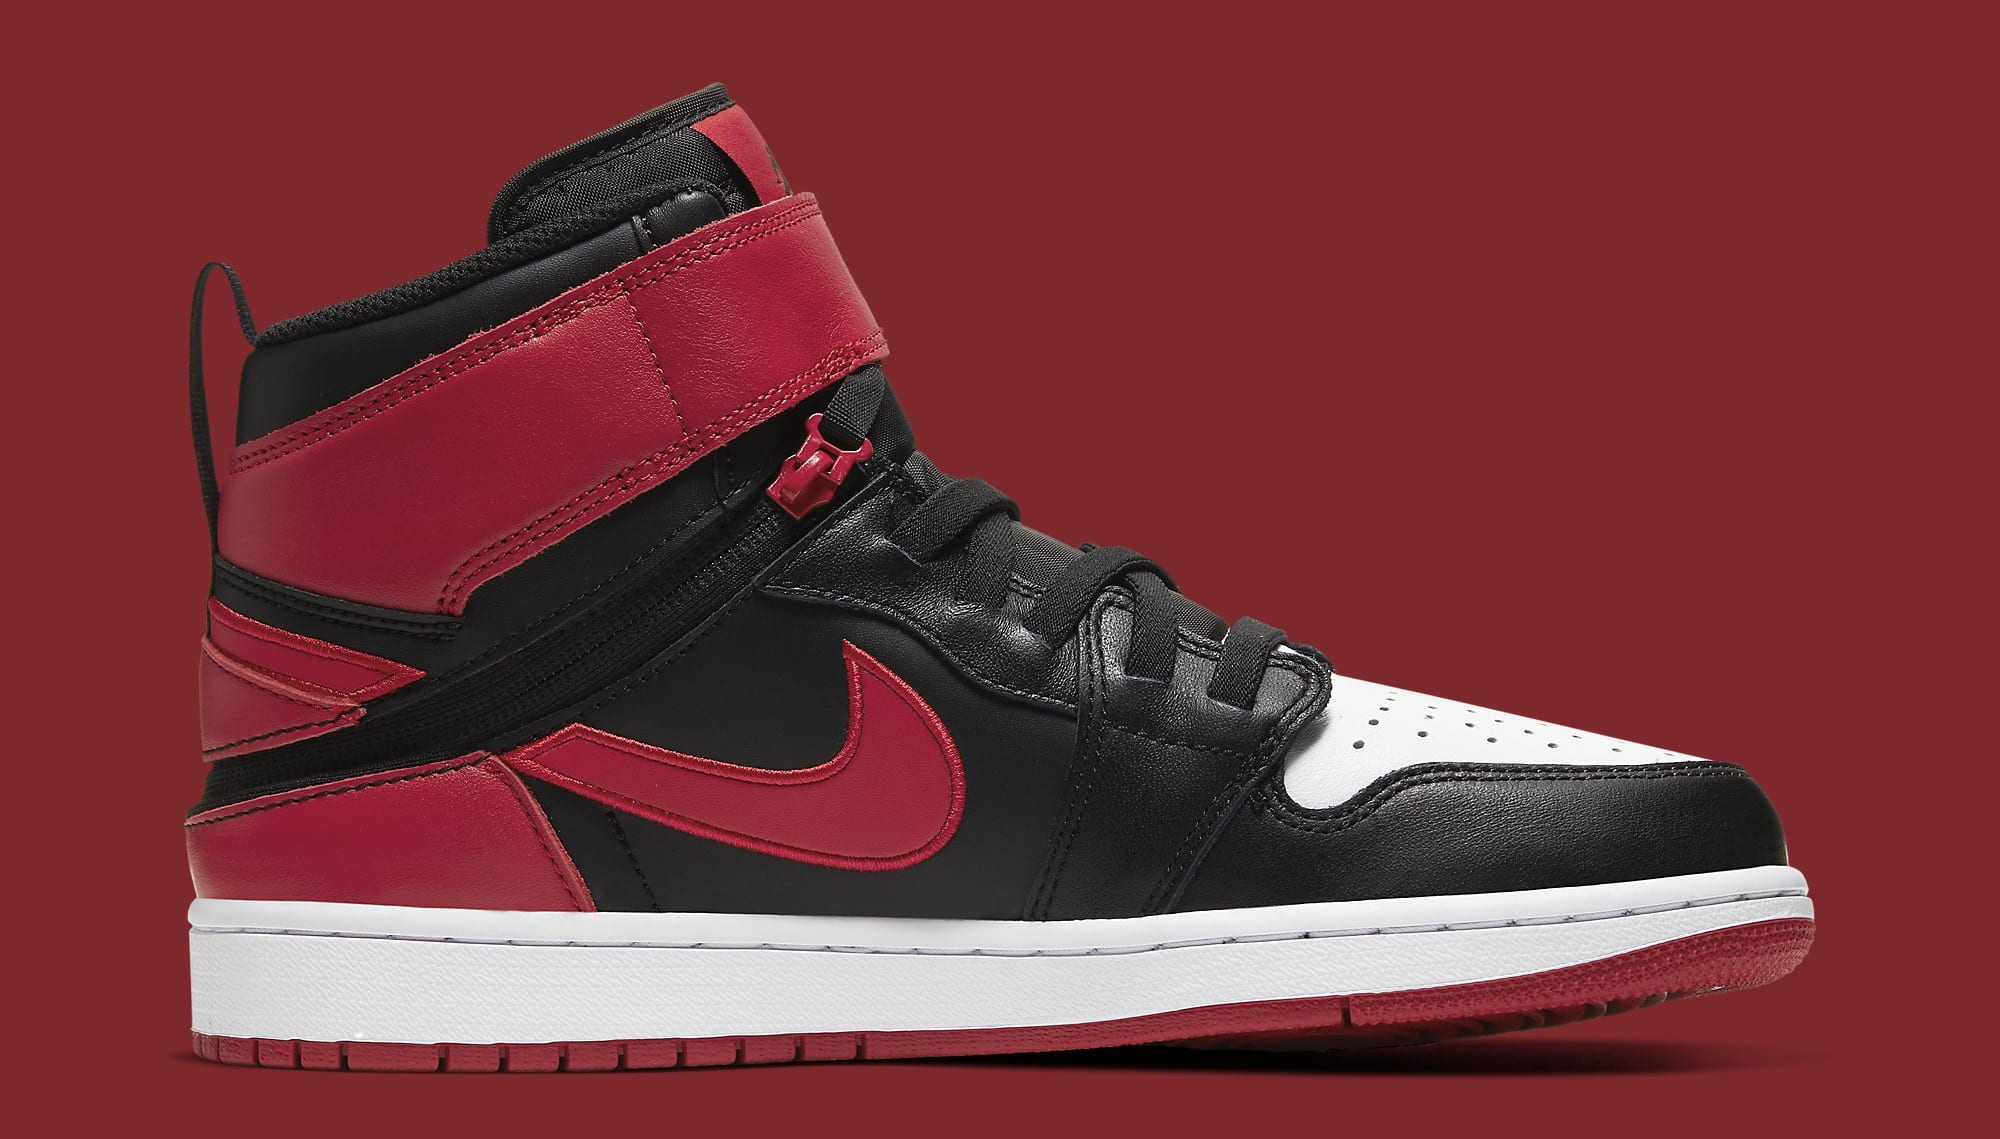 air-jordan-1-high-flyease-black-red-white-cq3835-001-medial